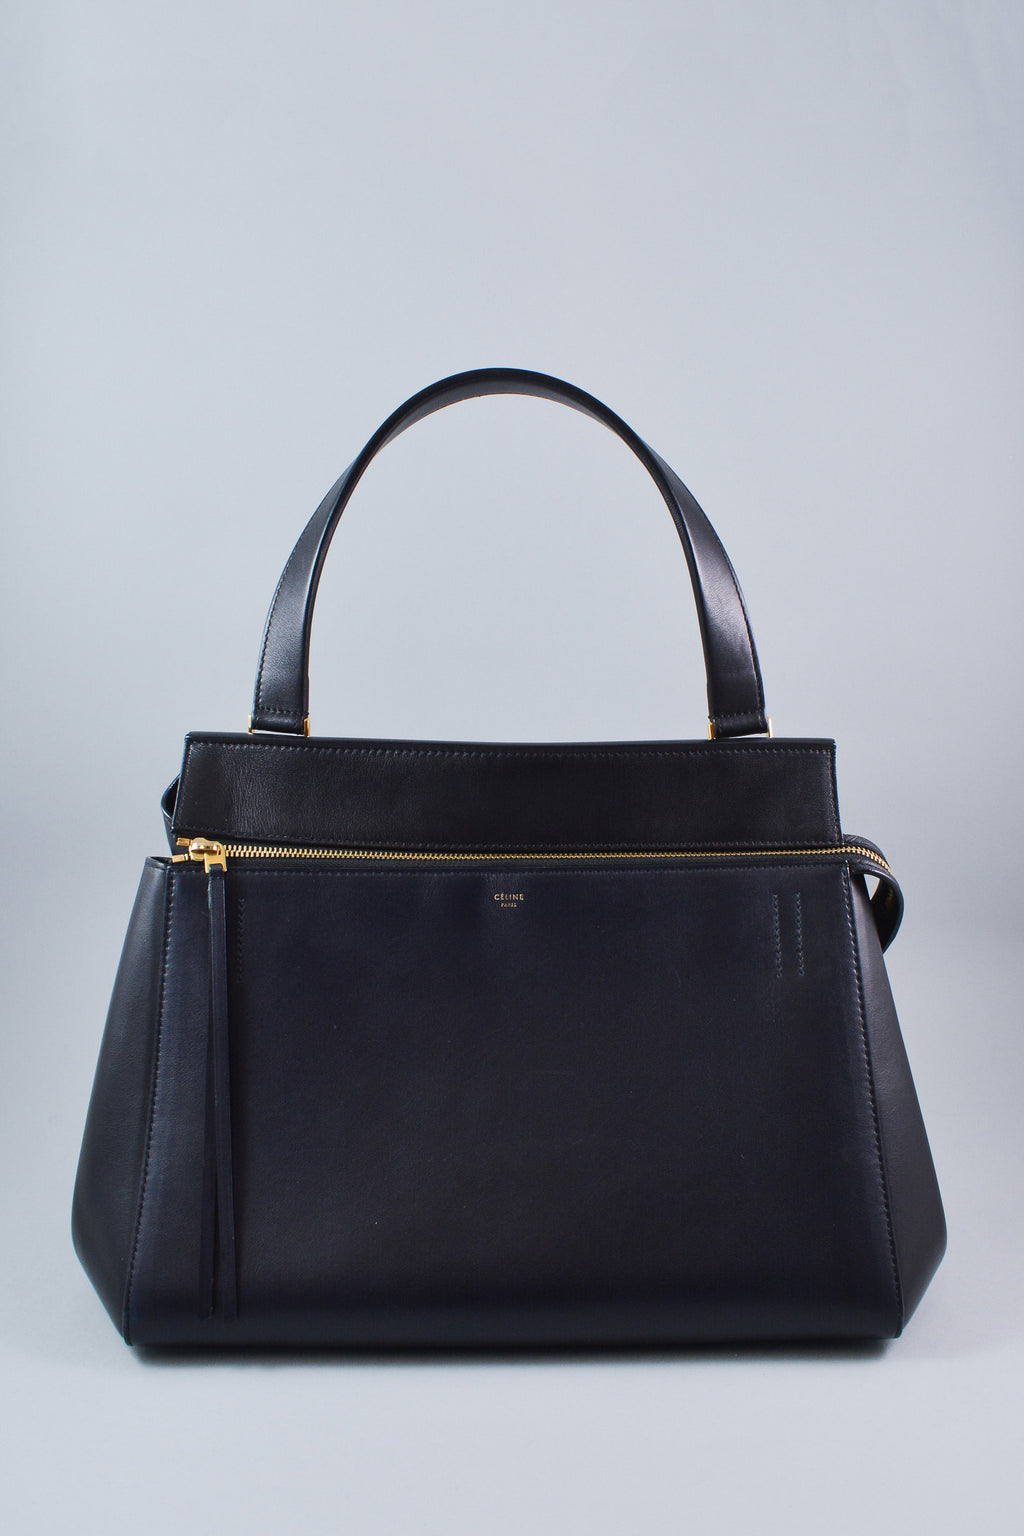 Celine Navy/Black Edge Bag